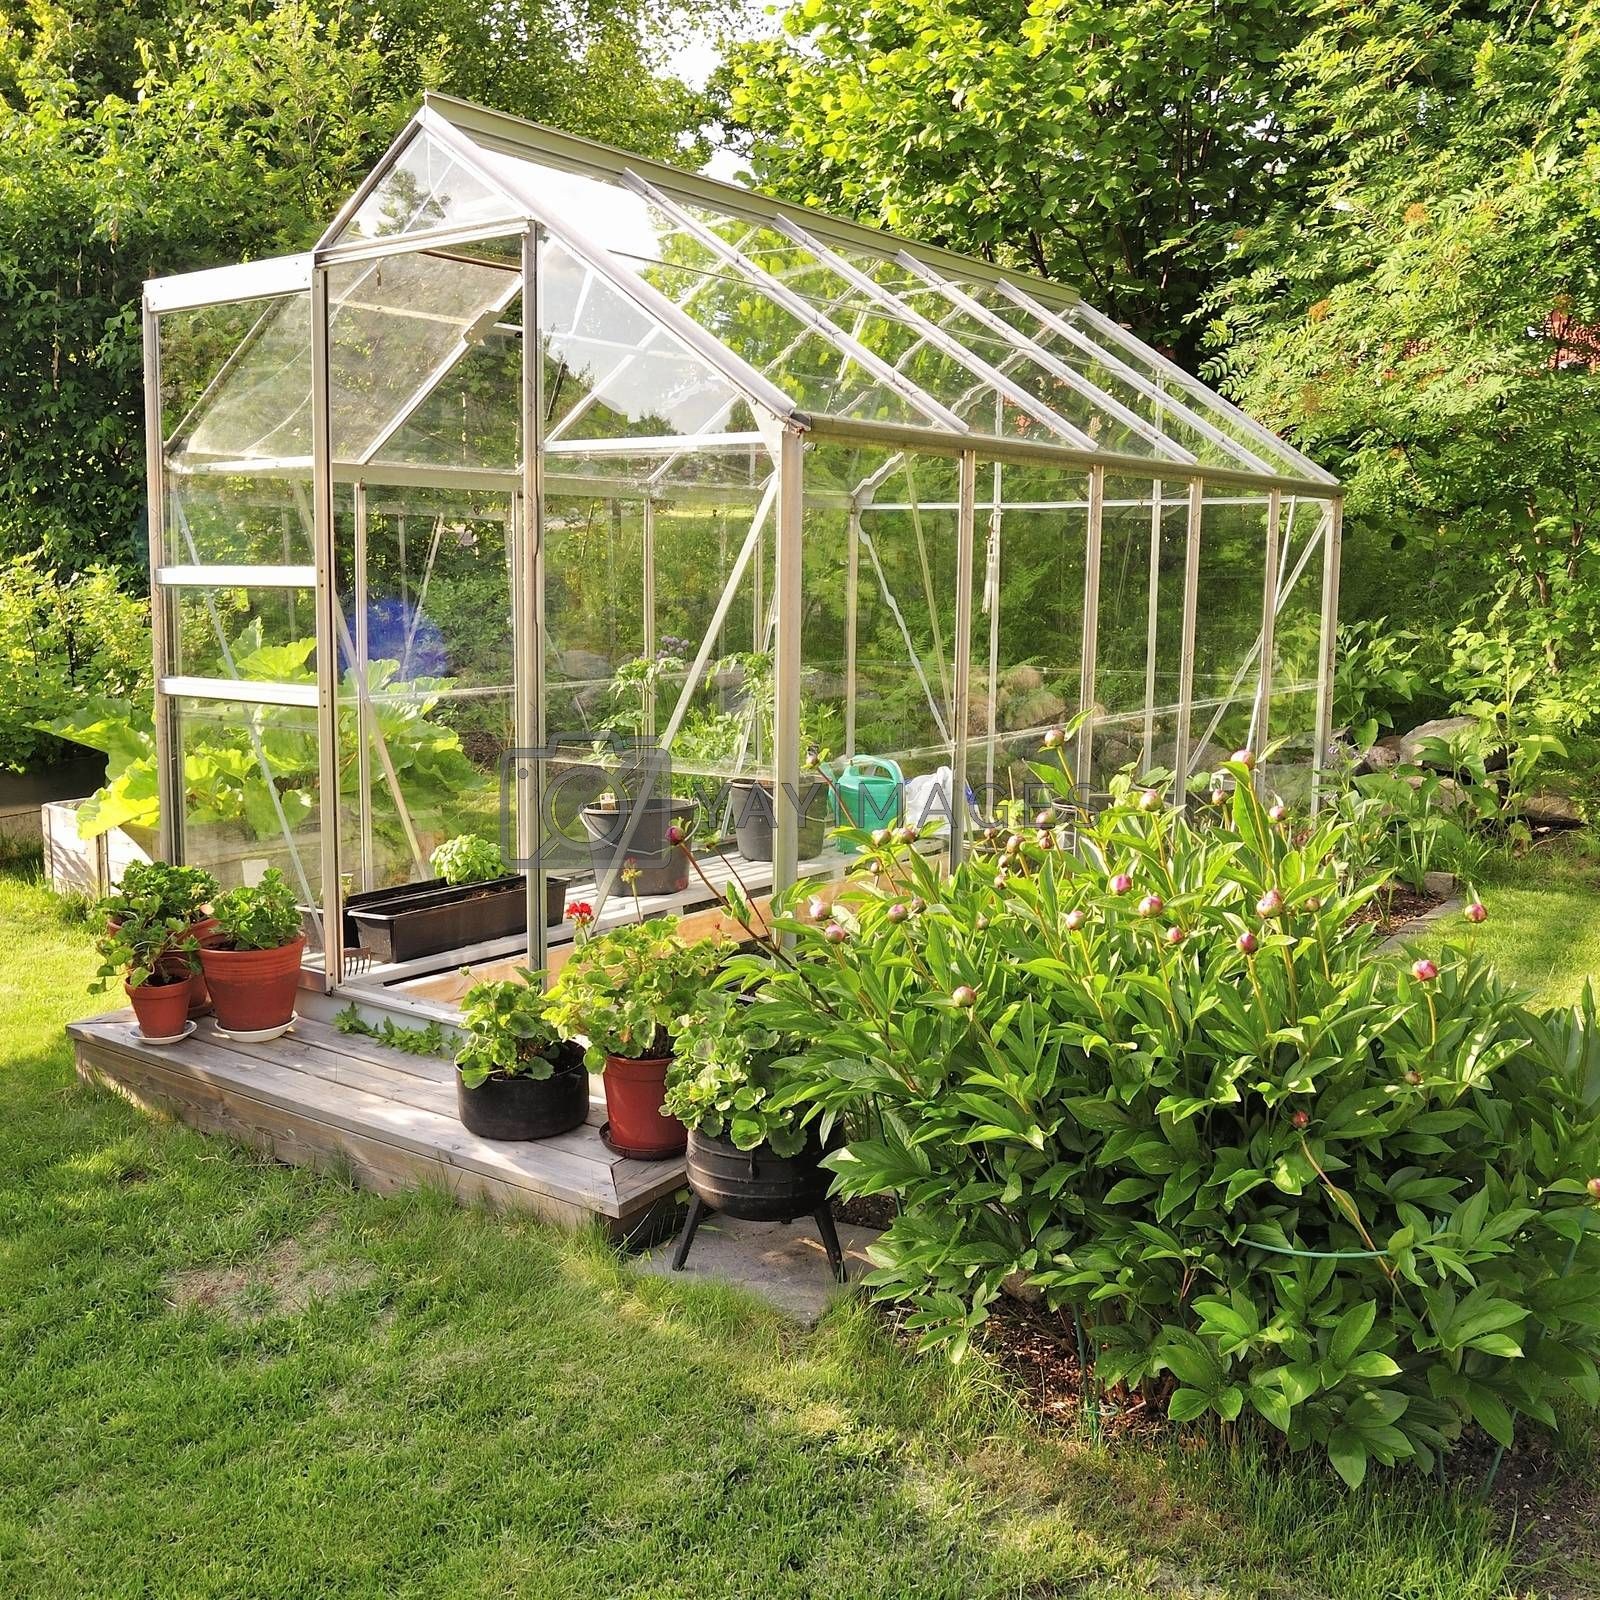 A green house full of flowers and plants.